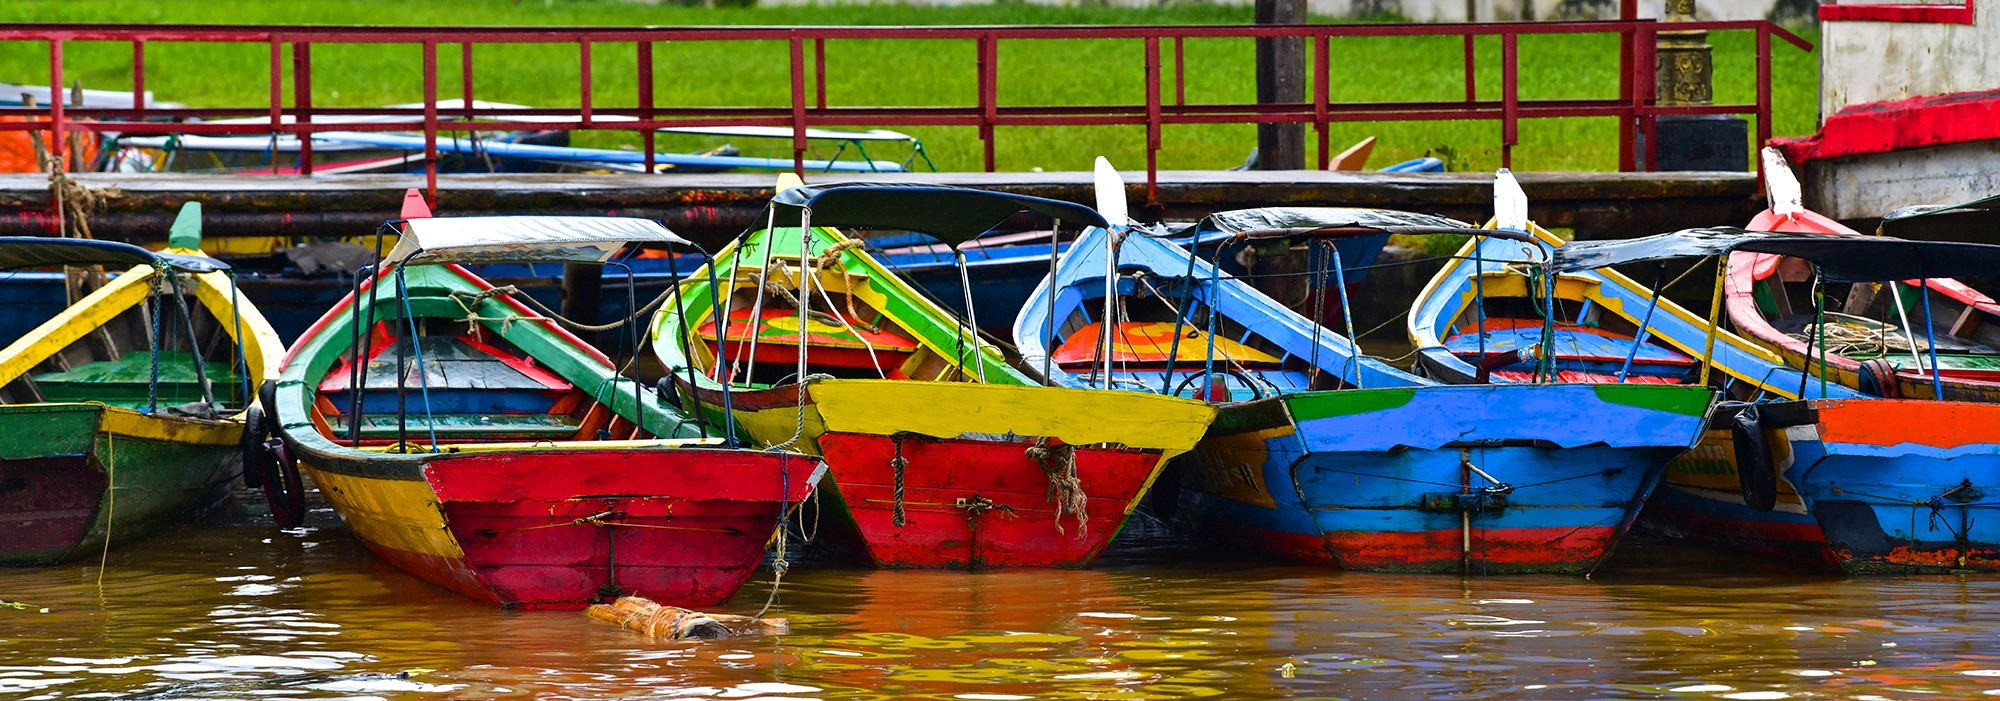 Brightly painted wooden boats tied to dock